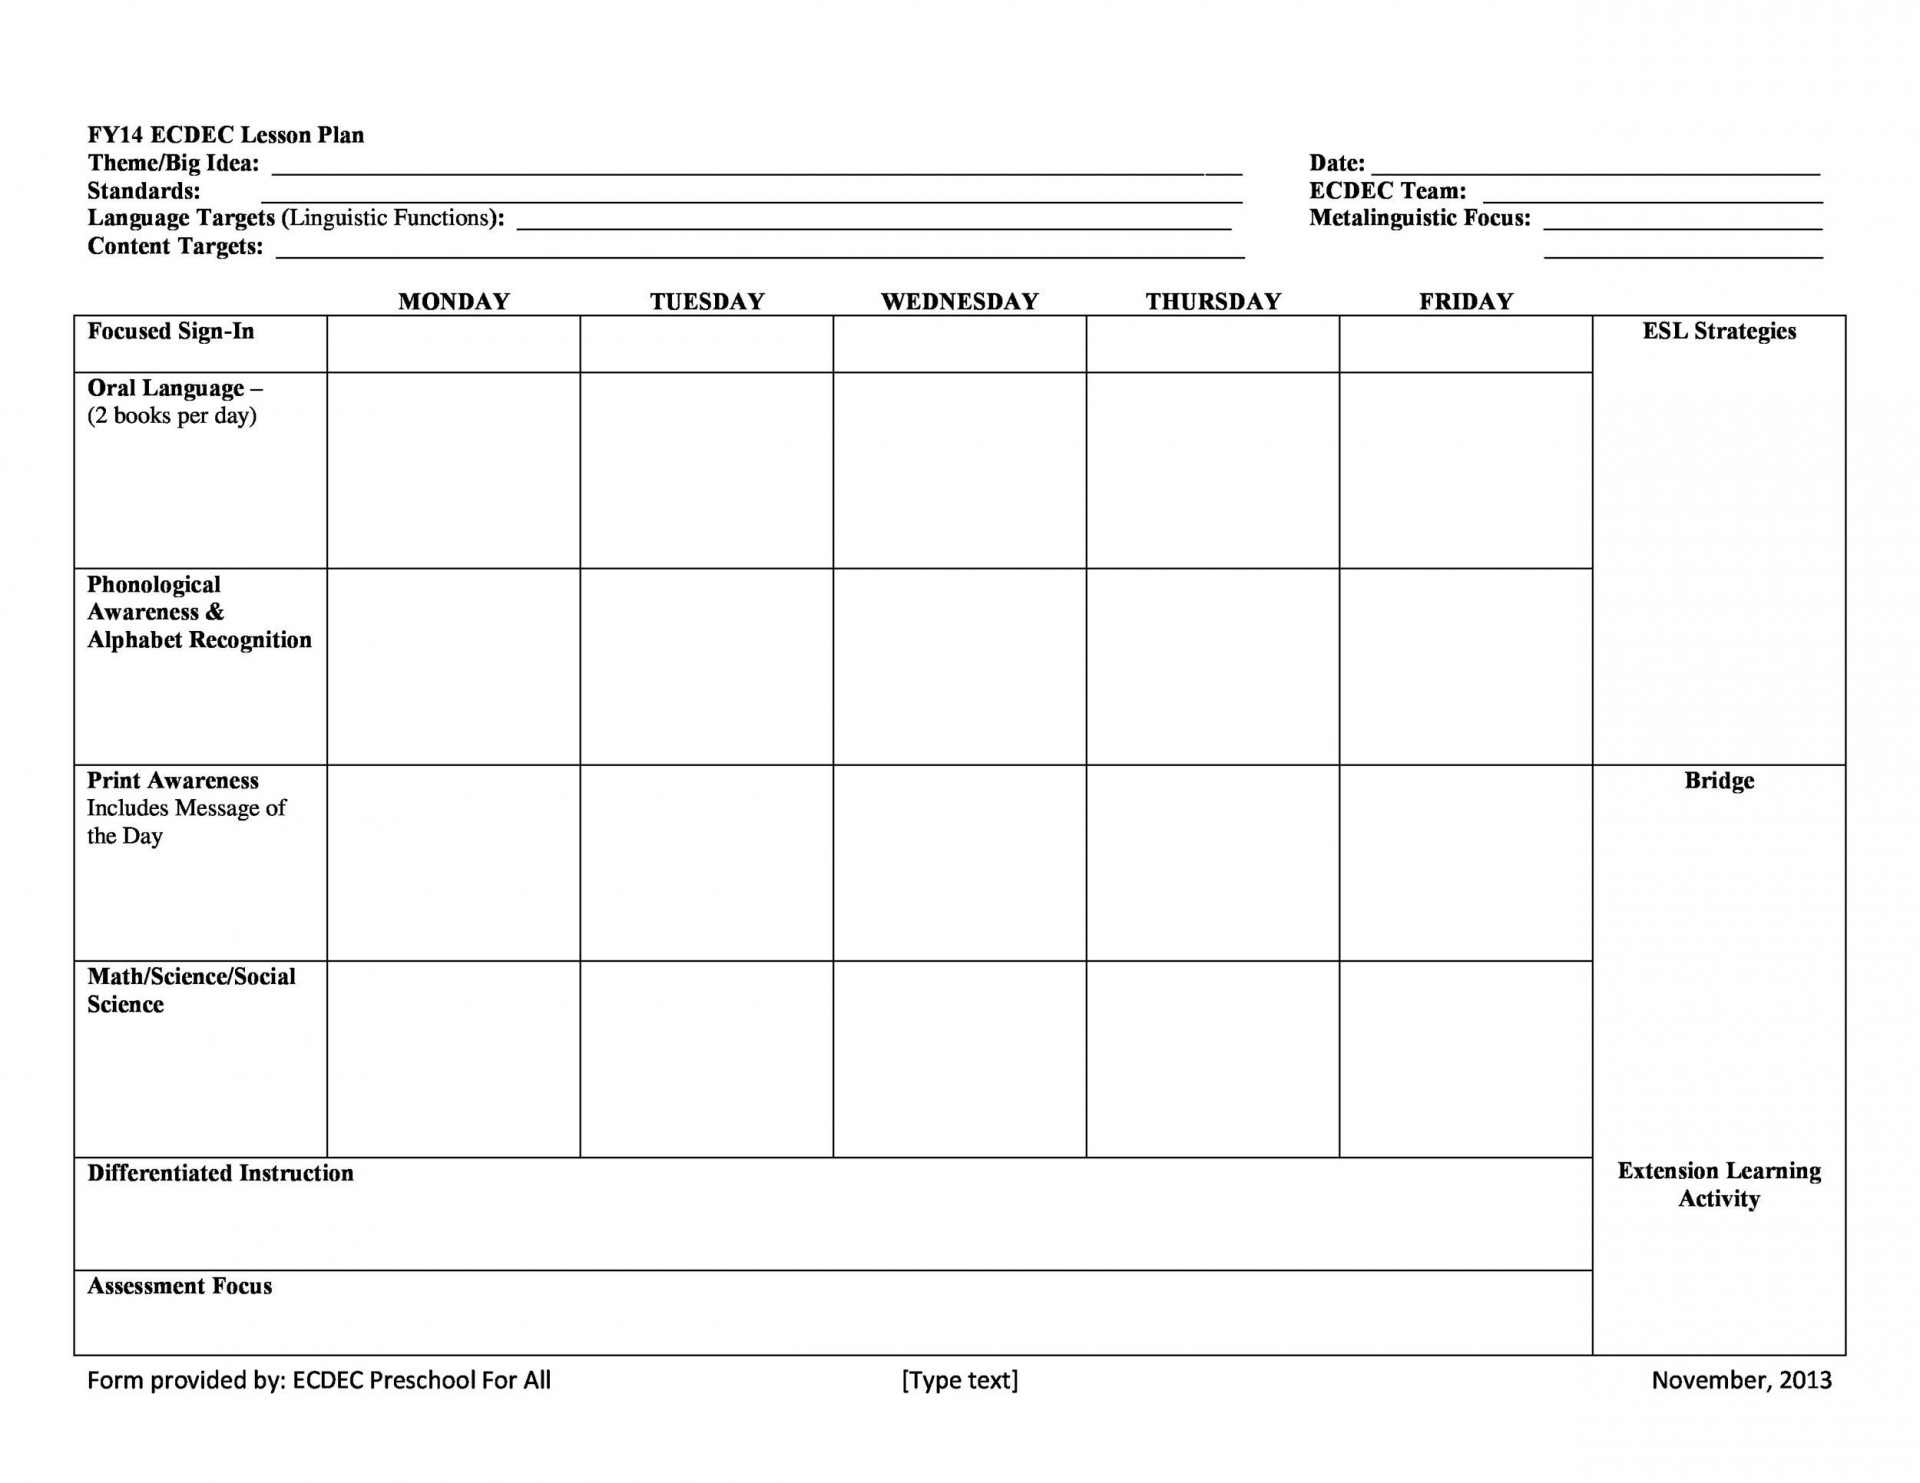 004 Unusual Printable Lesson Plan Template Weekly High Definition  Blank Pdf Monthly Free Preschool1920